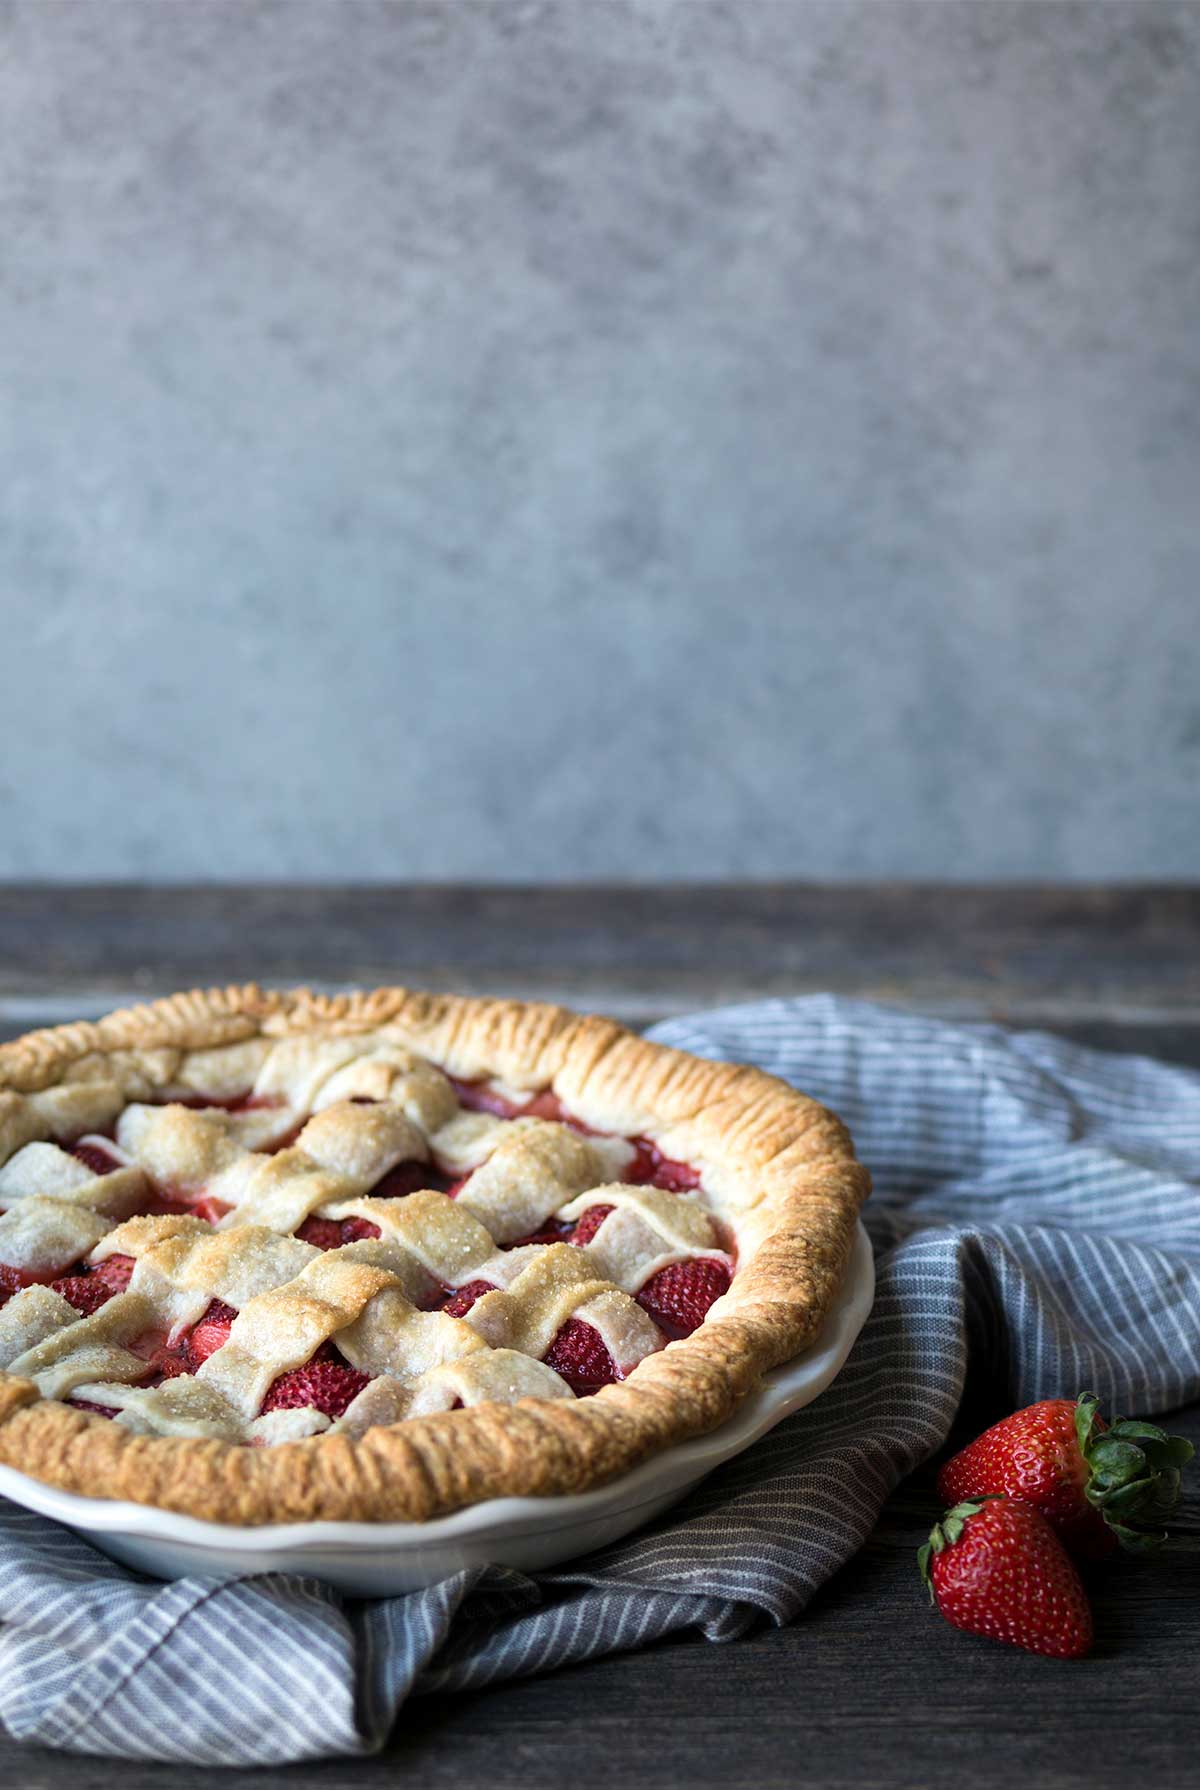 Strawberry pie recipe step by step photos savory simple fresh strawberry pie with a lattice top sitting on a blue toned napkin next to fandeluxe Images